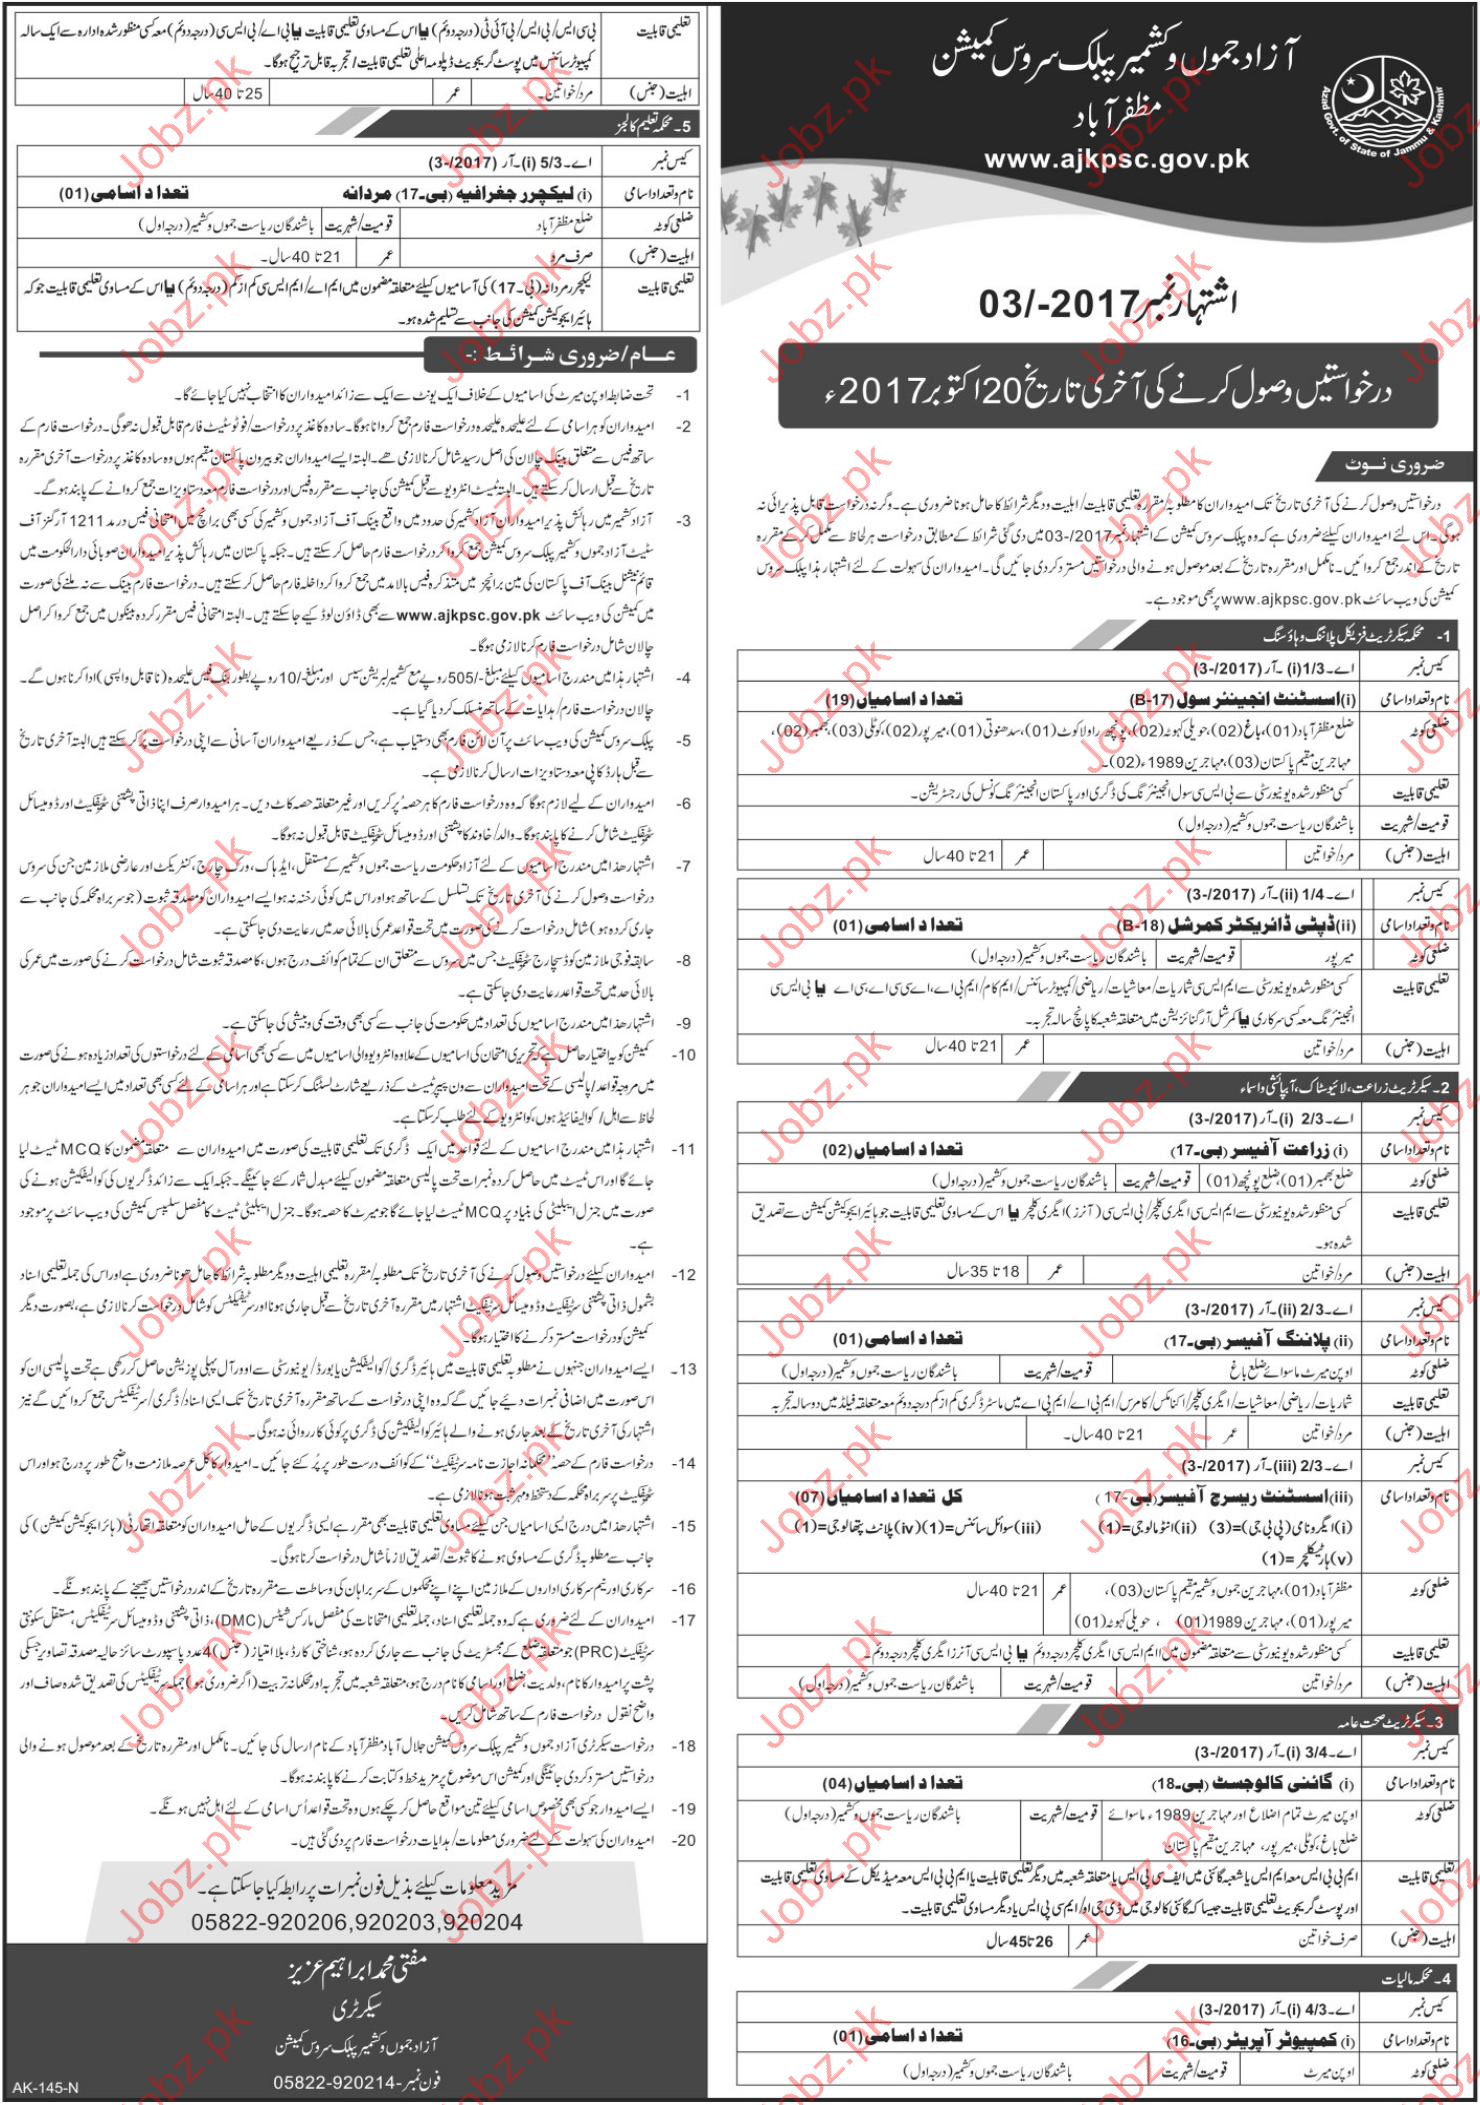 AJKPSC Public Service Commission Jobs in Azad Jammu Kashmir